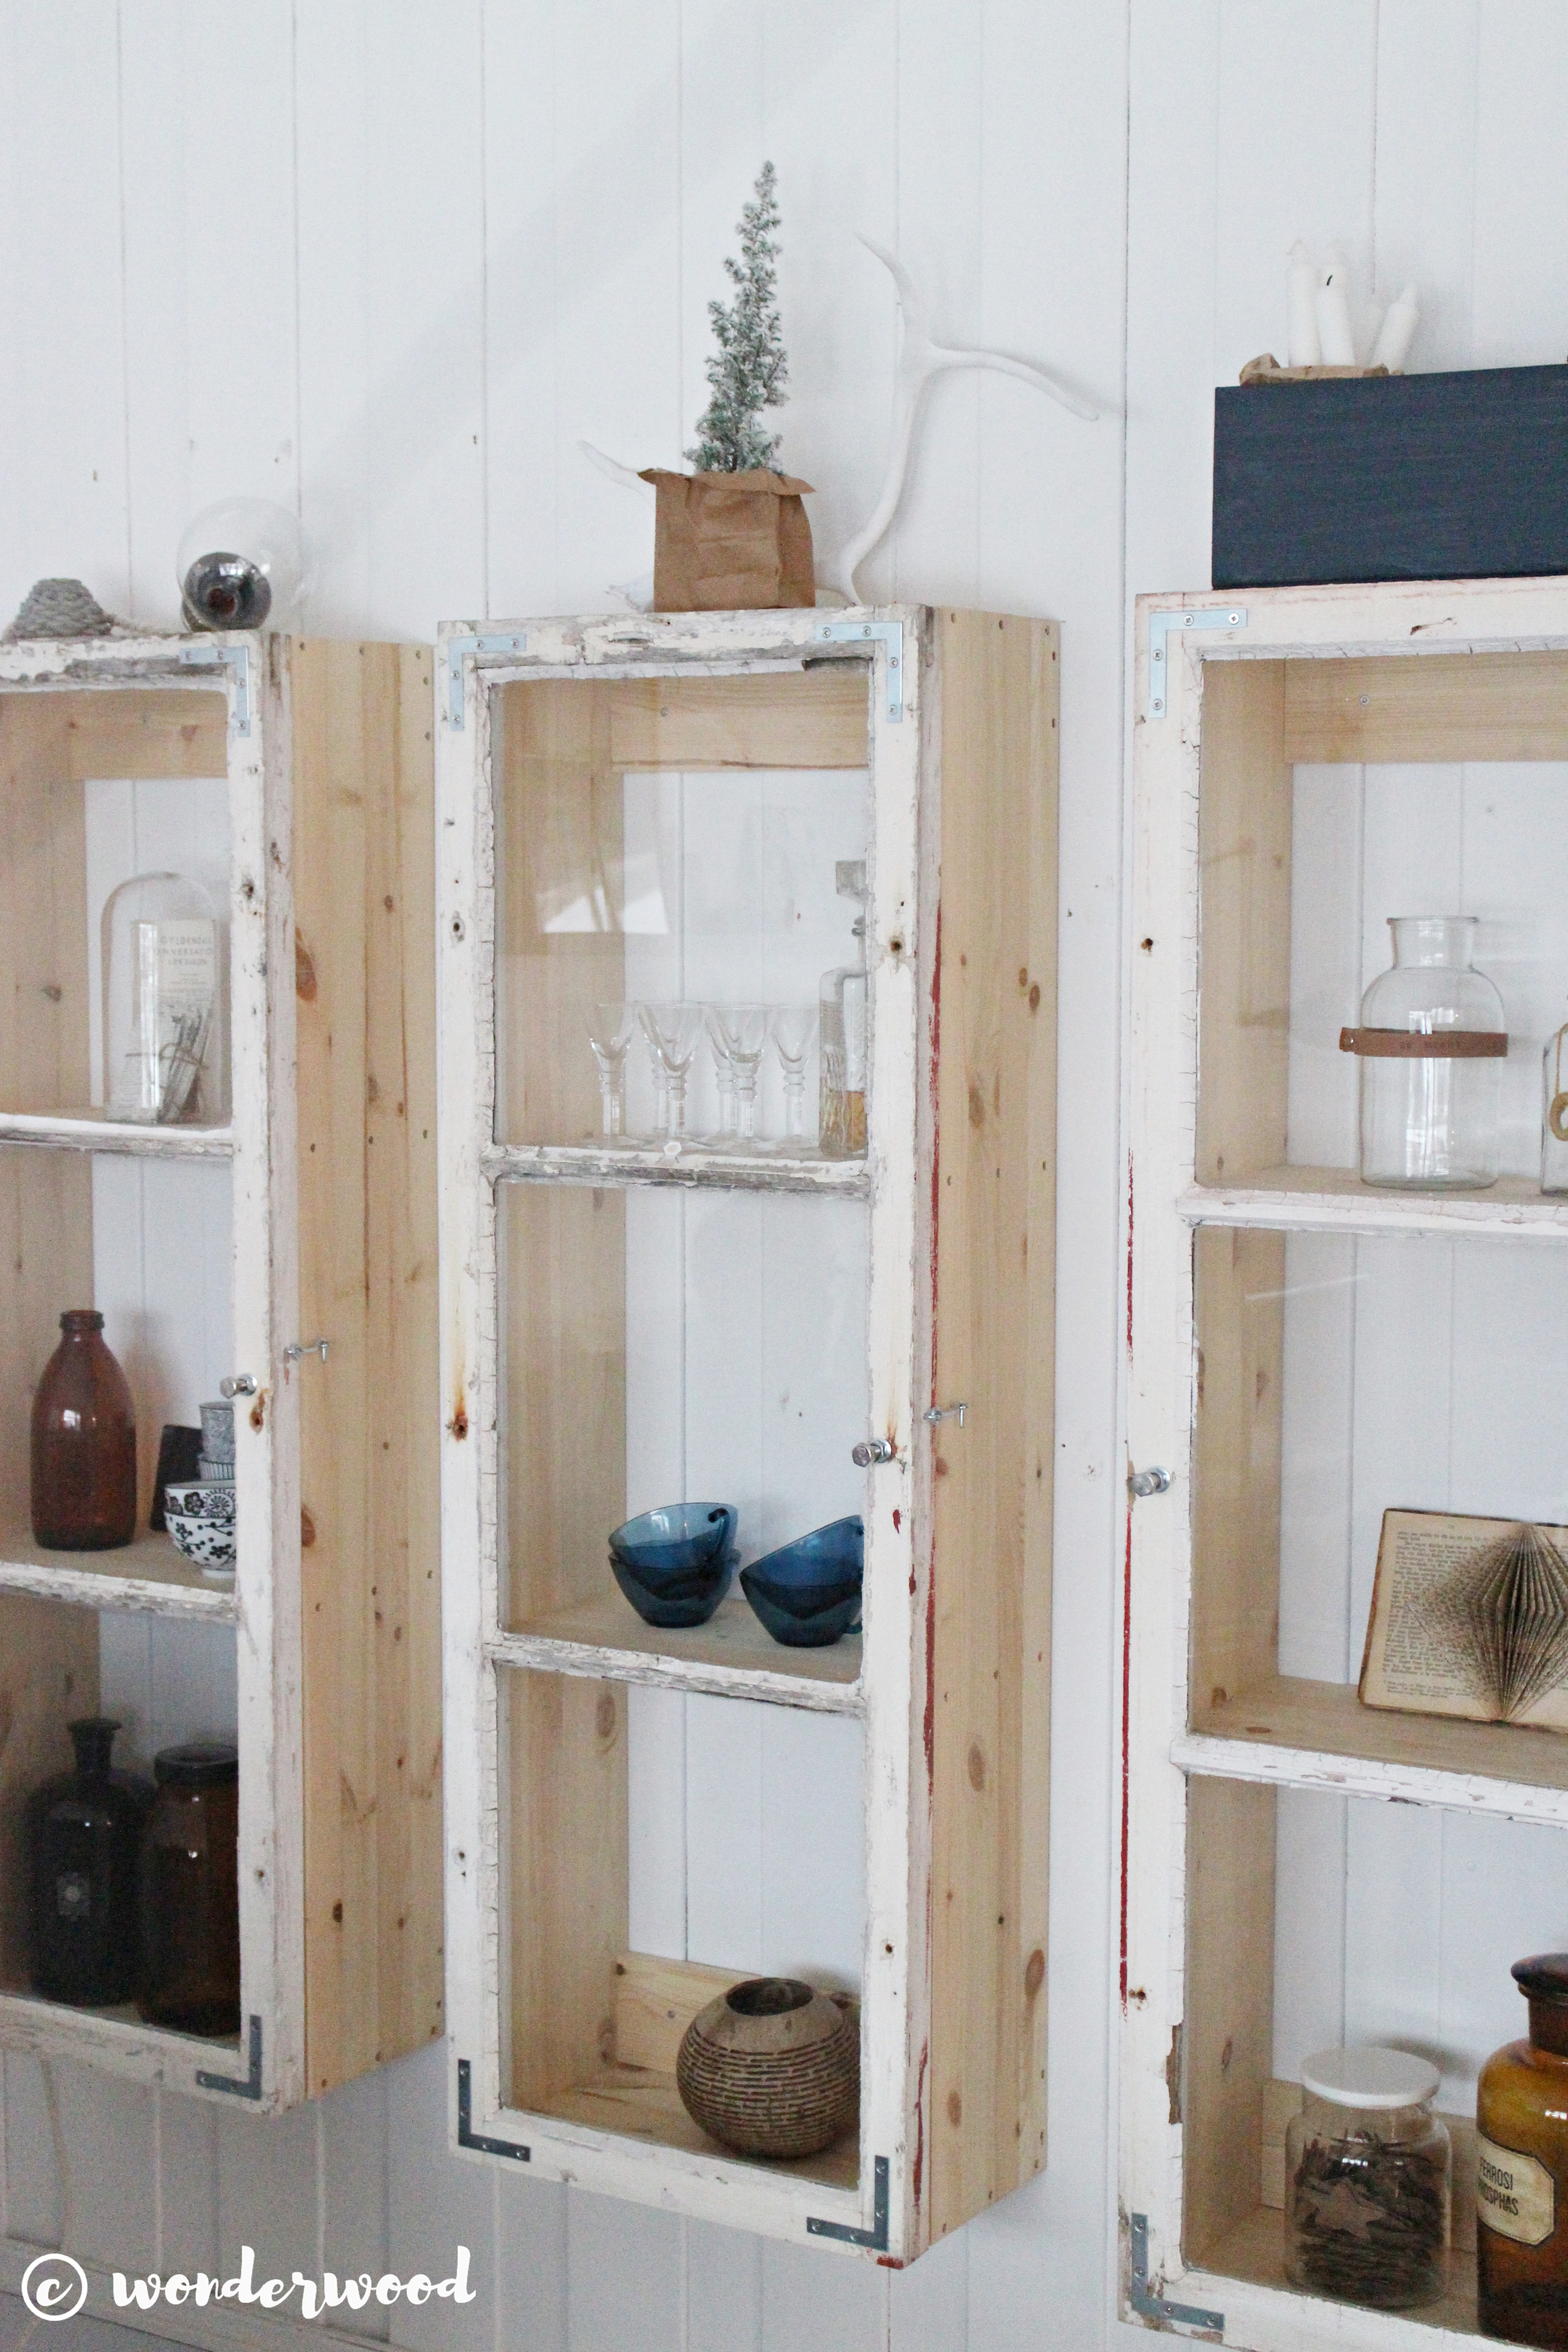 diy skap av gamle vinduer // diy old window cabinets